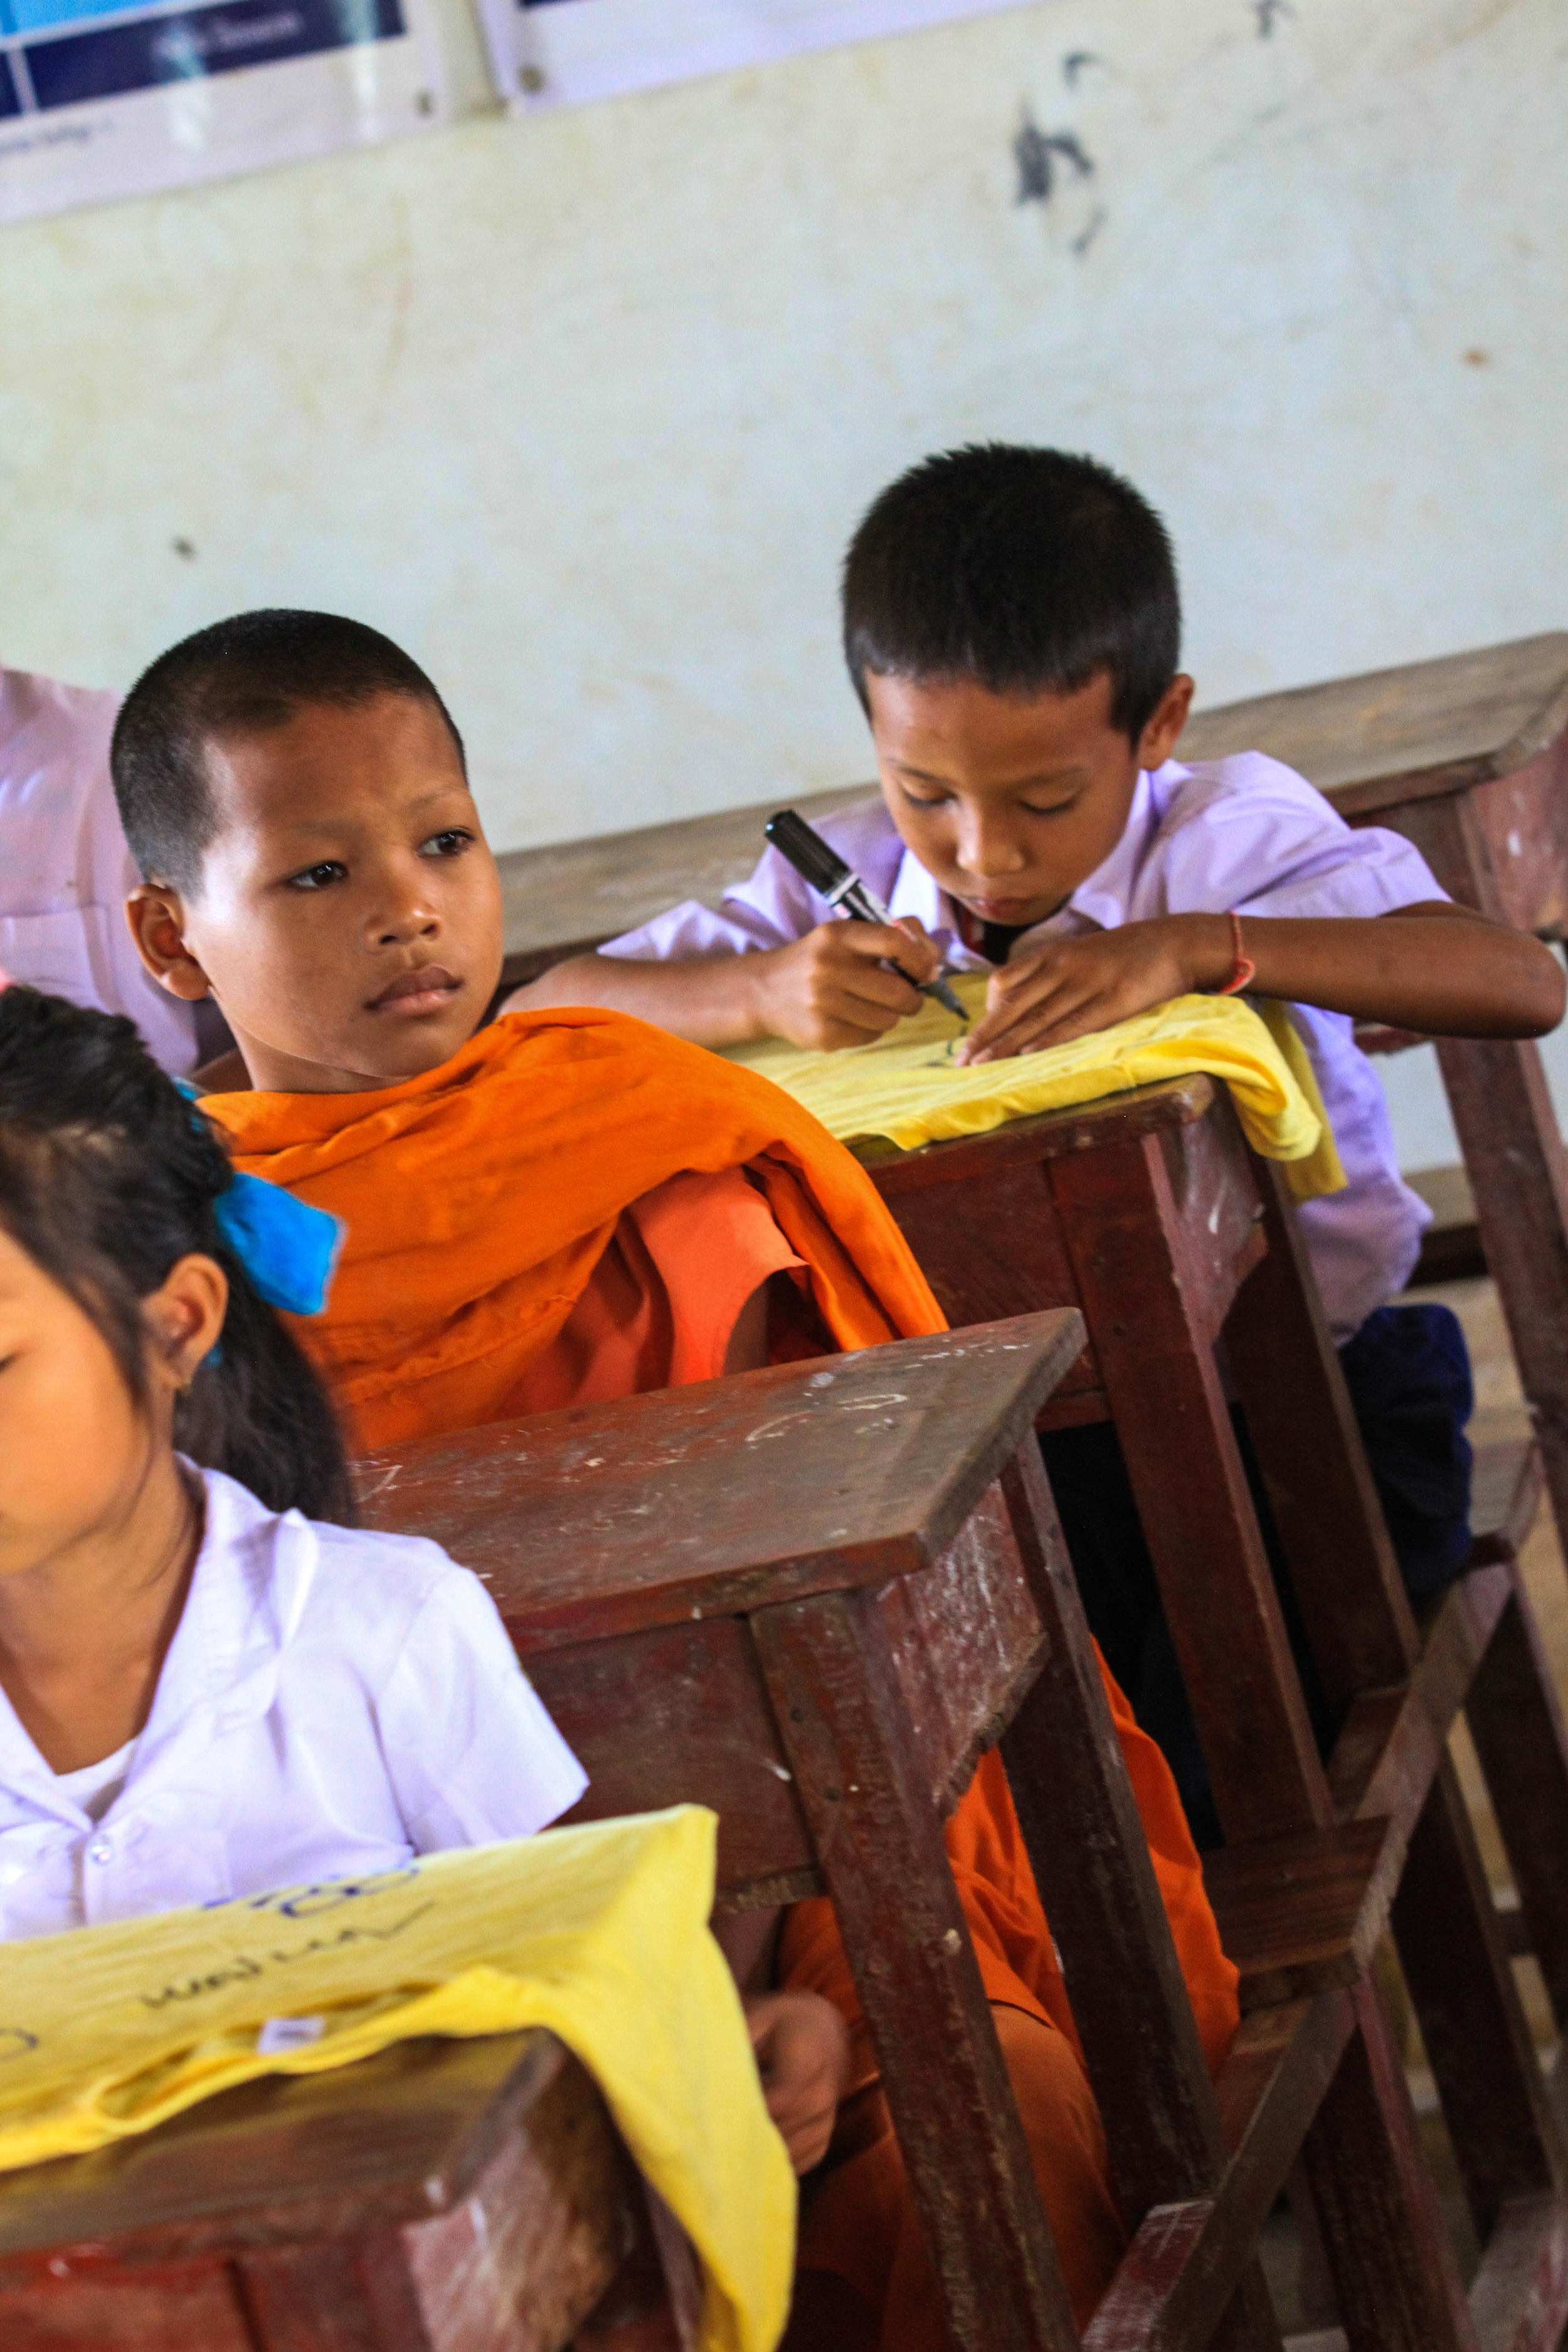 One of the boy monks was in class the first day. I prayed often for him as he wasn't allowed to participate in the Bible school activities.